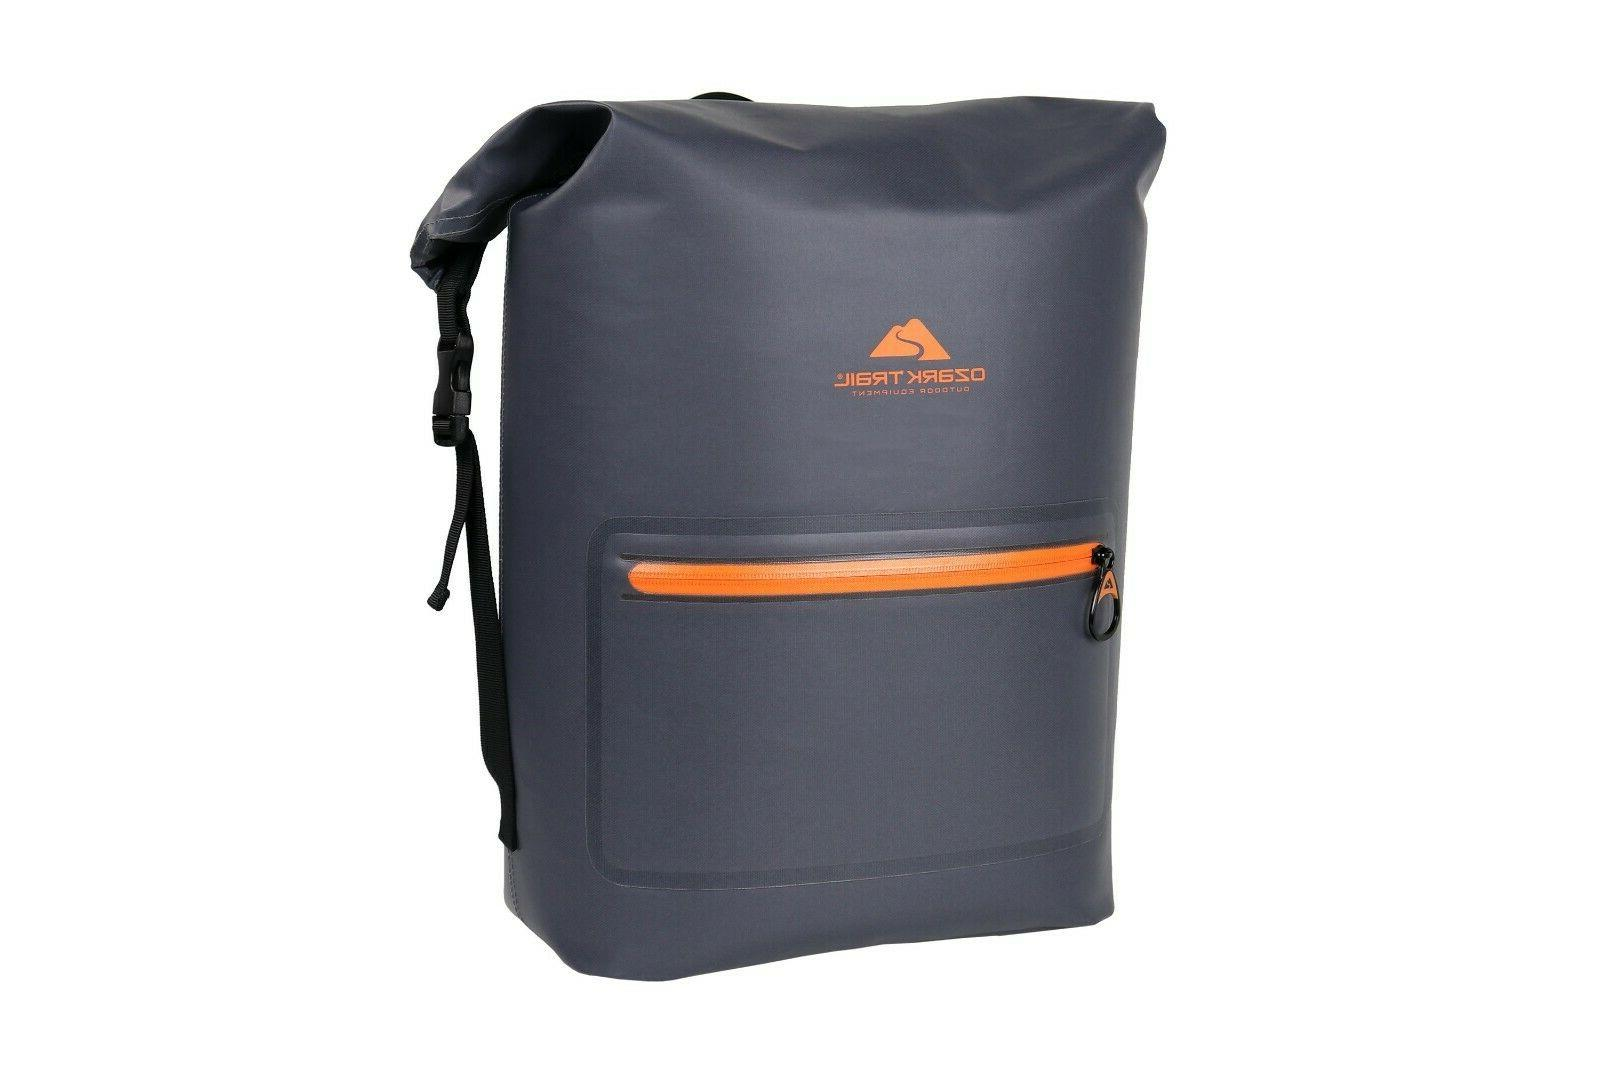 new backpack day pack cooler insulated 15